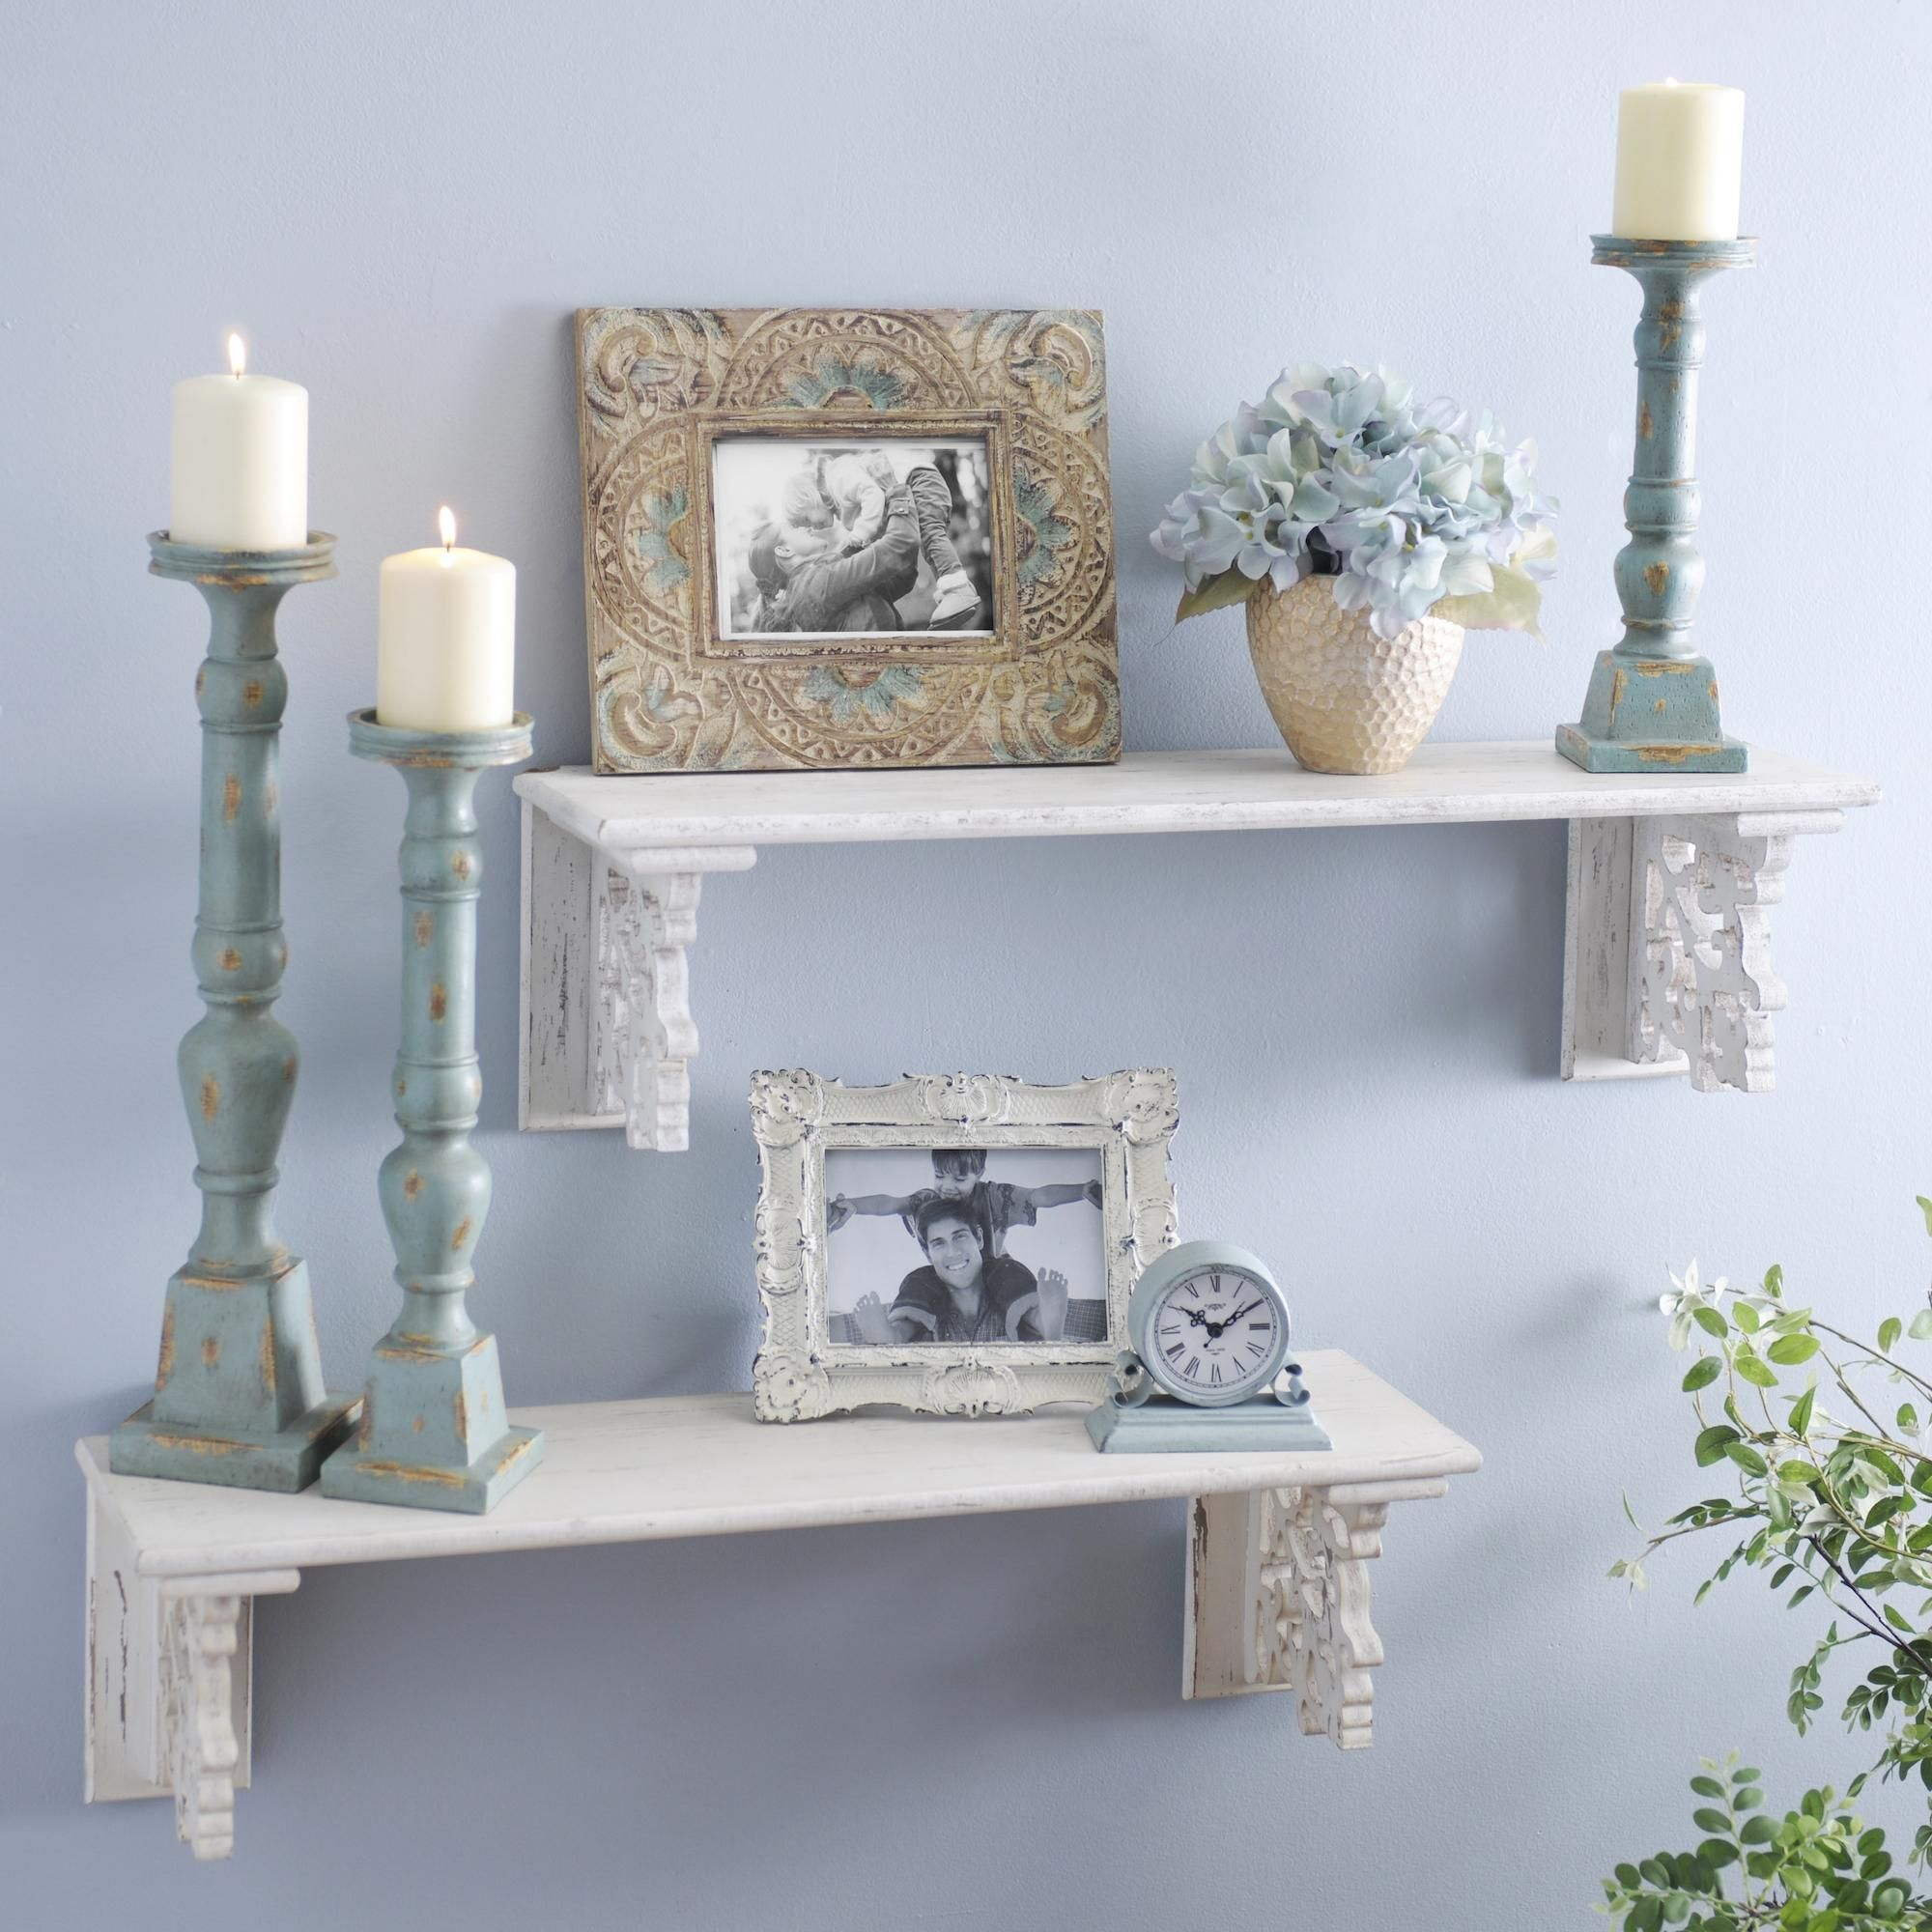 The Ivory Carved Shelf is elegant, beautiful and super ... on Kirkland's Decor Home Accents id=33264